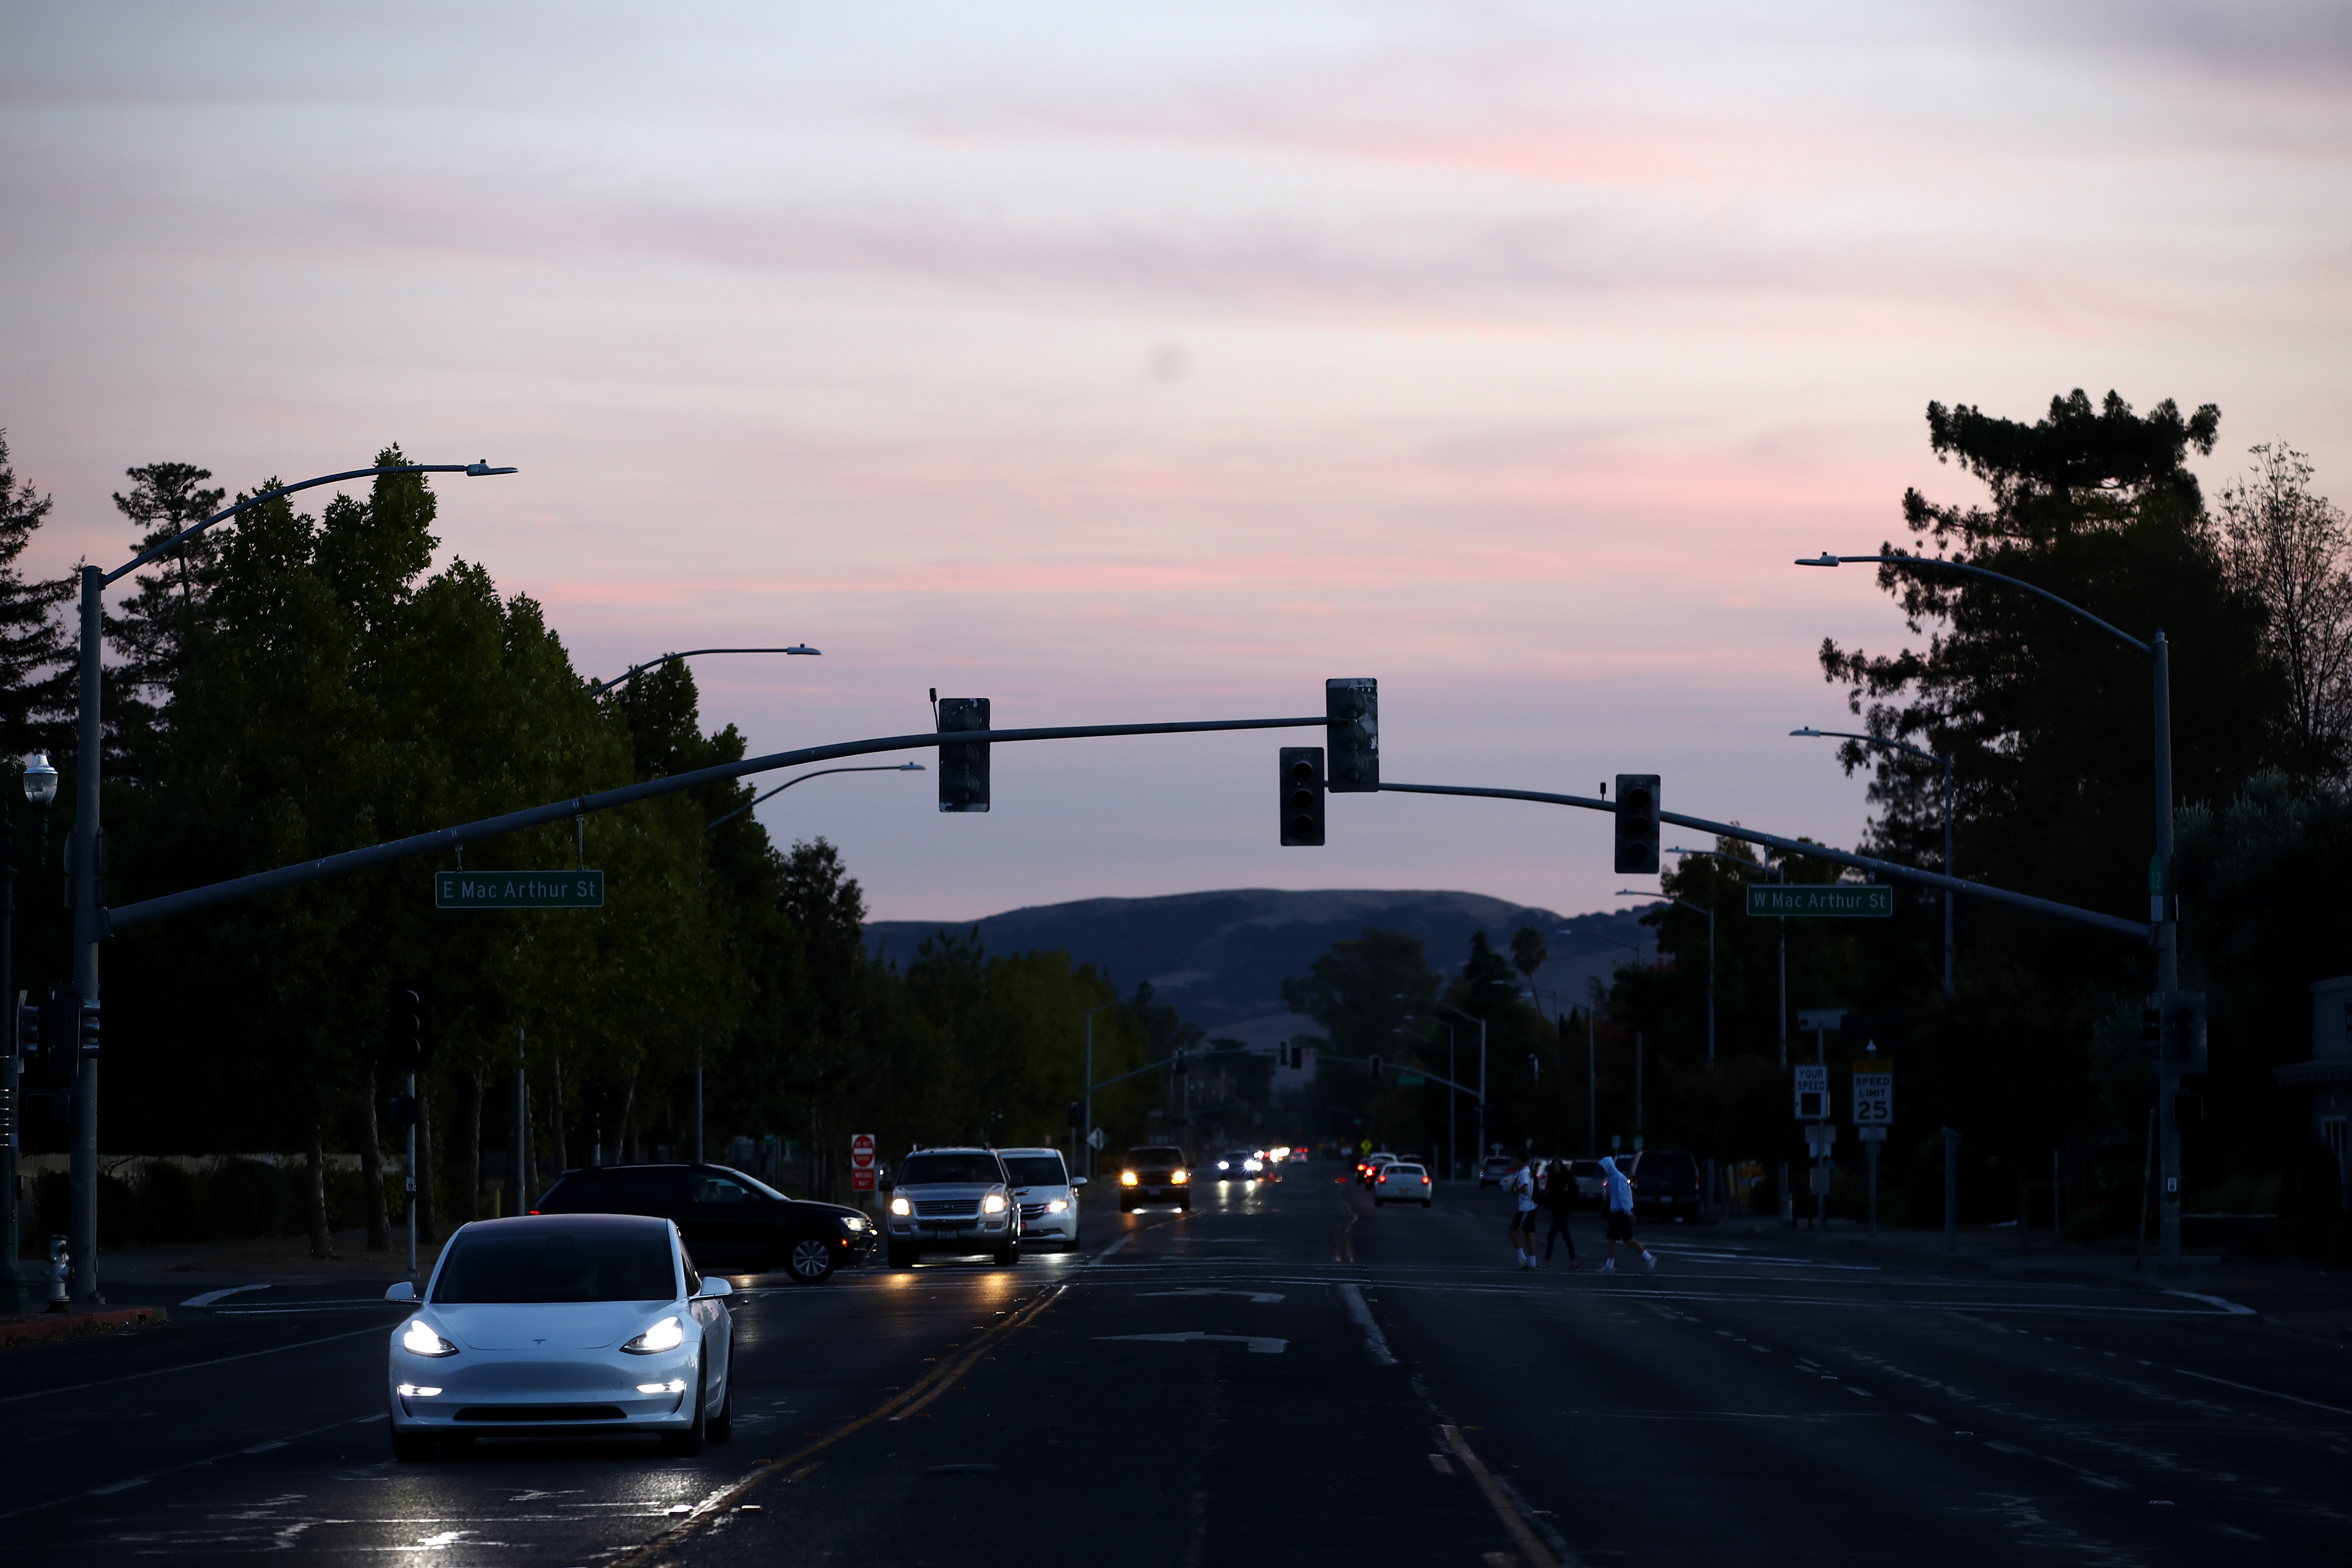 An intersection with darkened traffic lights and cars with their headlights on.